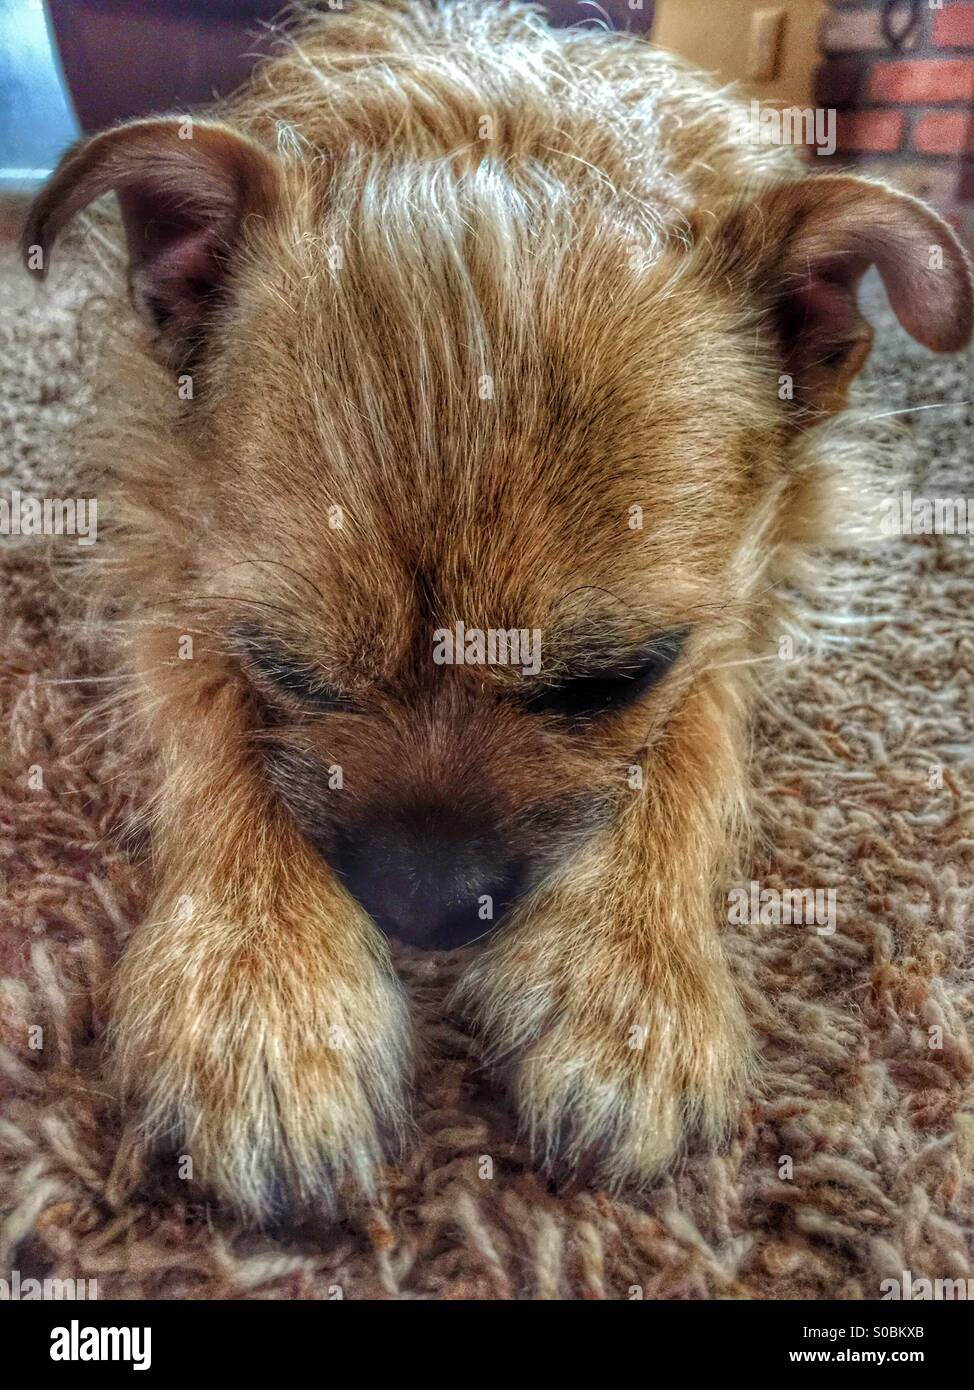 Super cute border terrier chihuahua mix resting on carpet. Phoenix, Arizona  USA - Stock Image